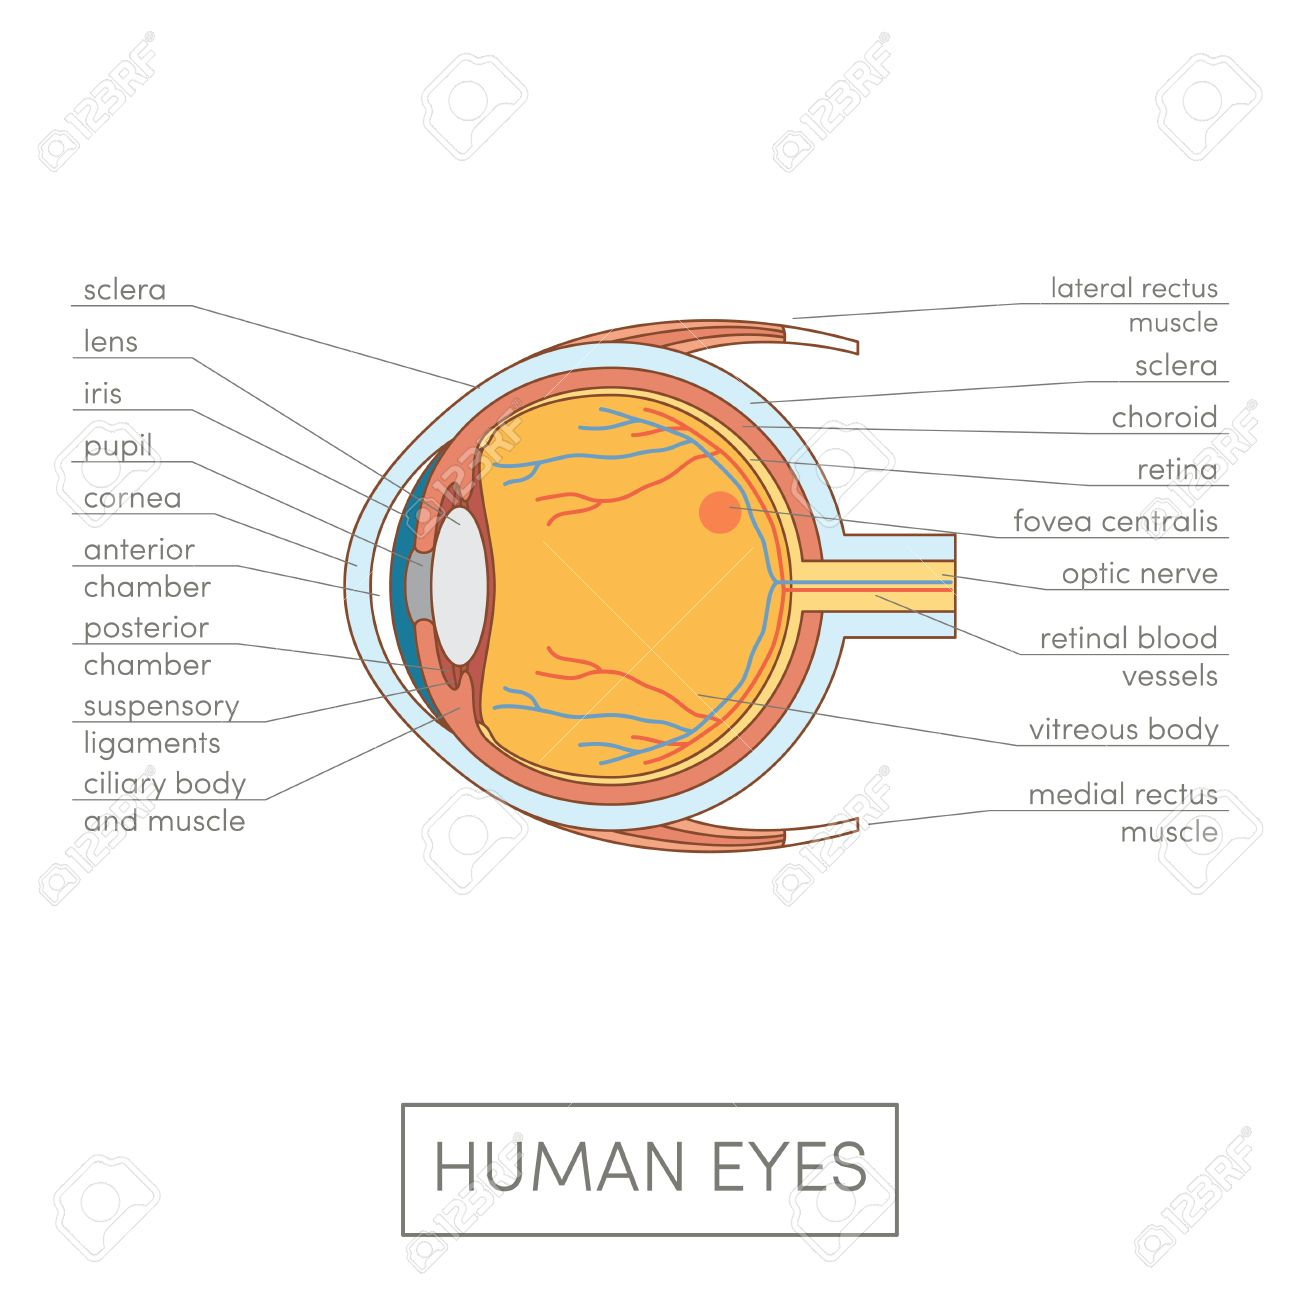 human eye diagram simple nest smoke alarm wiring anatomy cartoon vector illustration for medical atlas or educational textbook cross